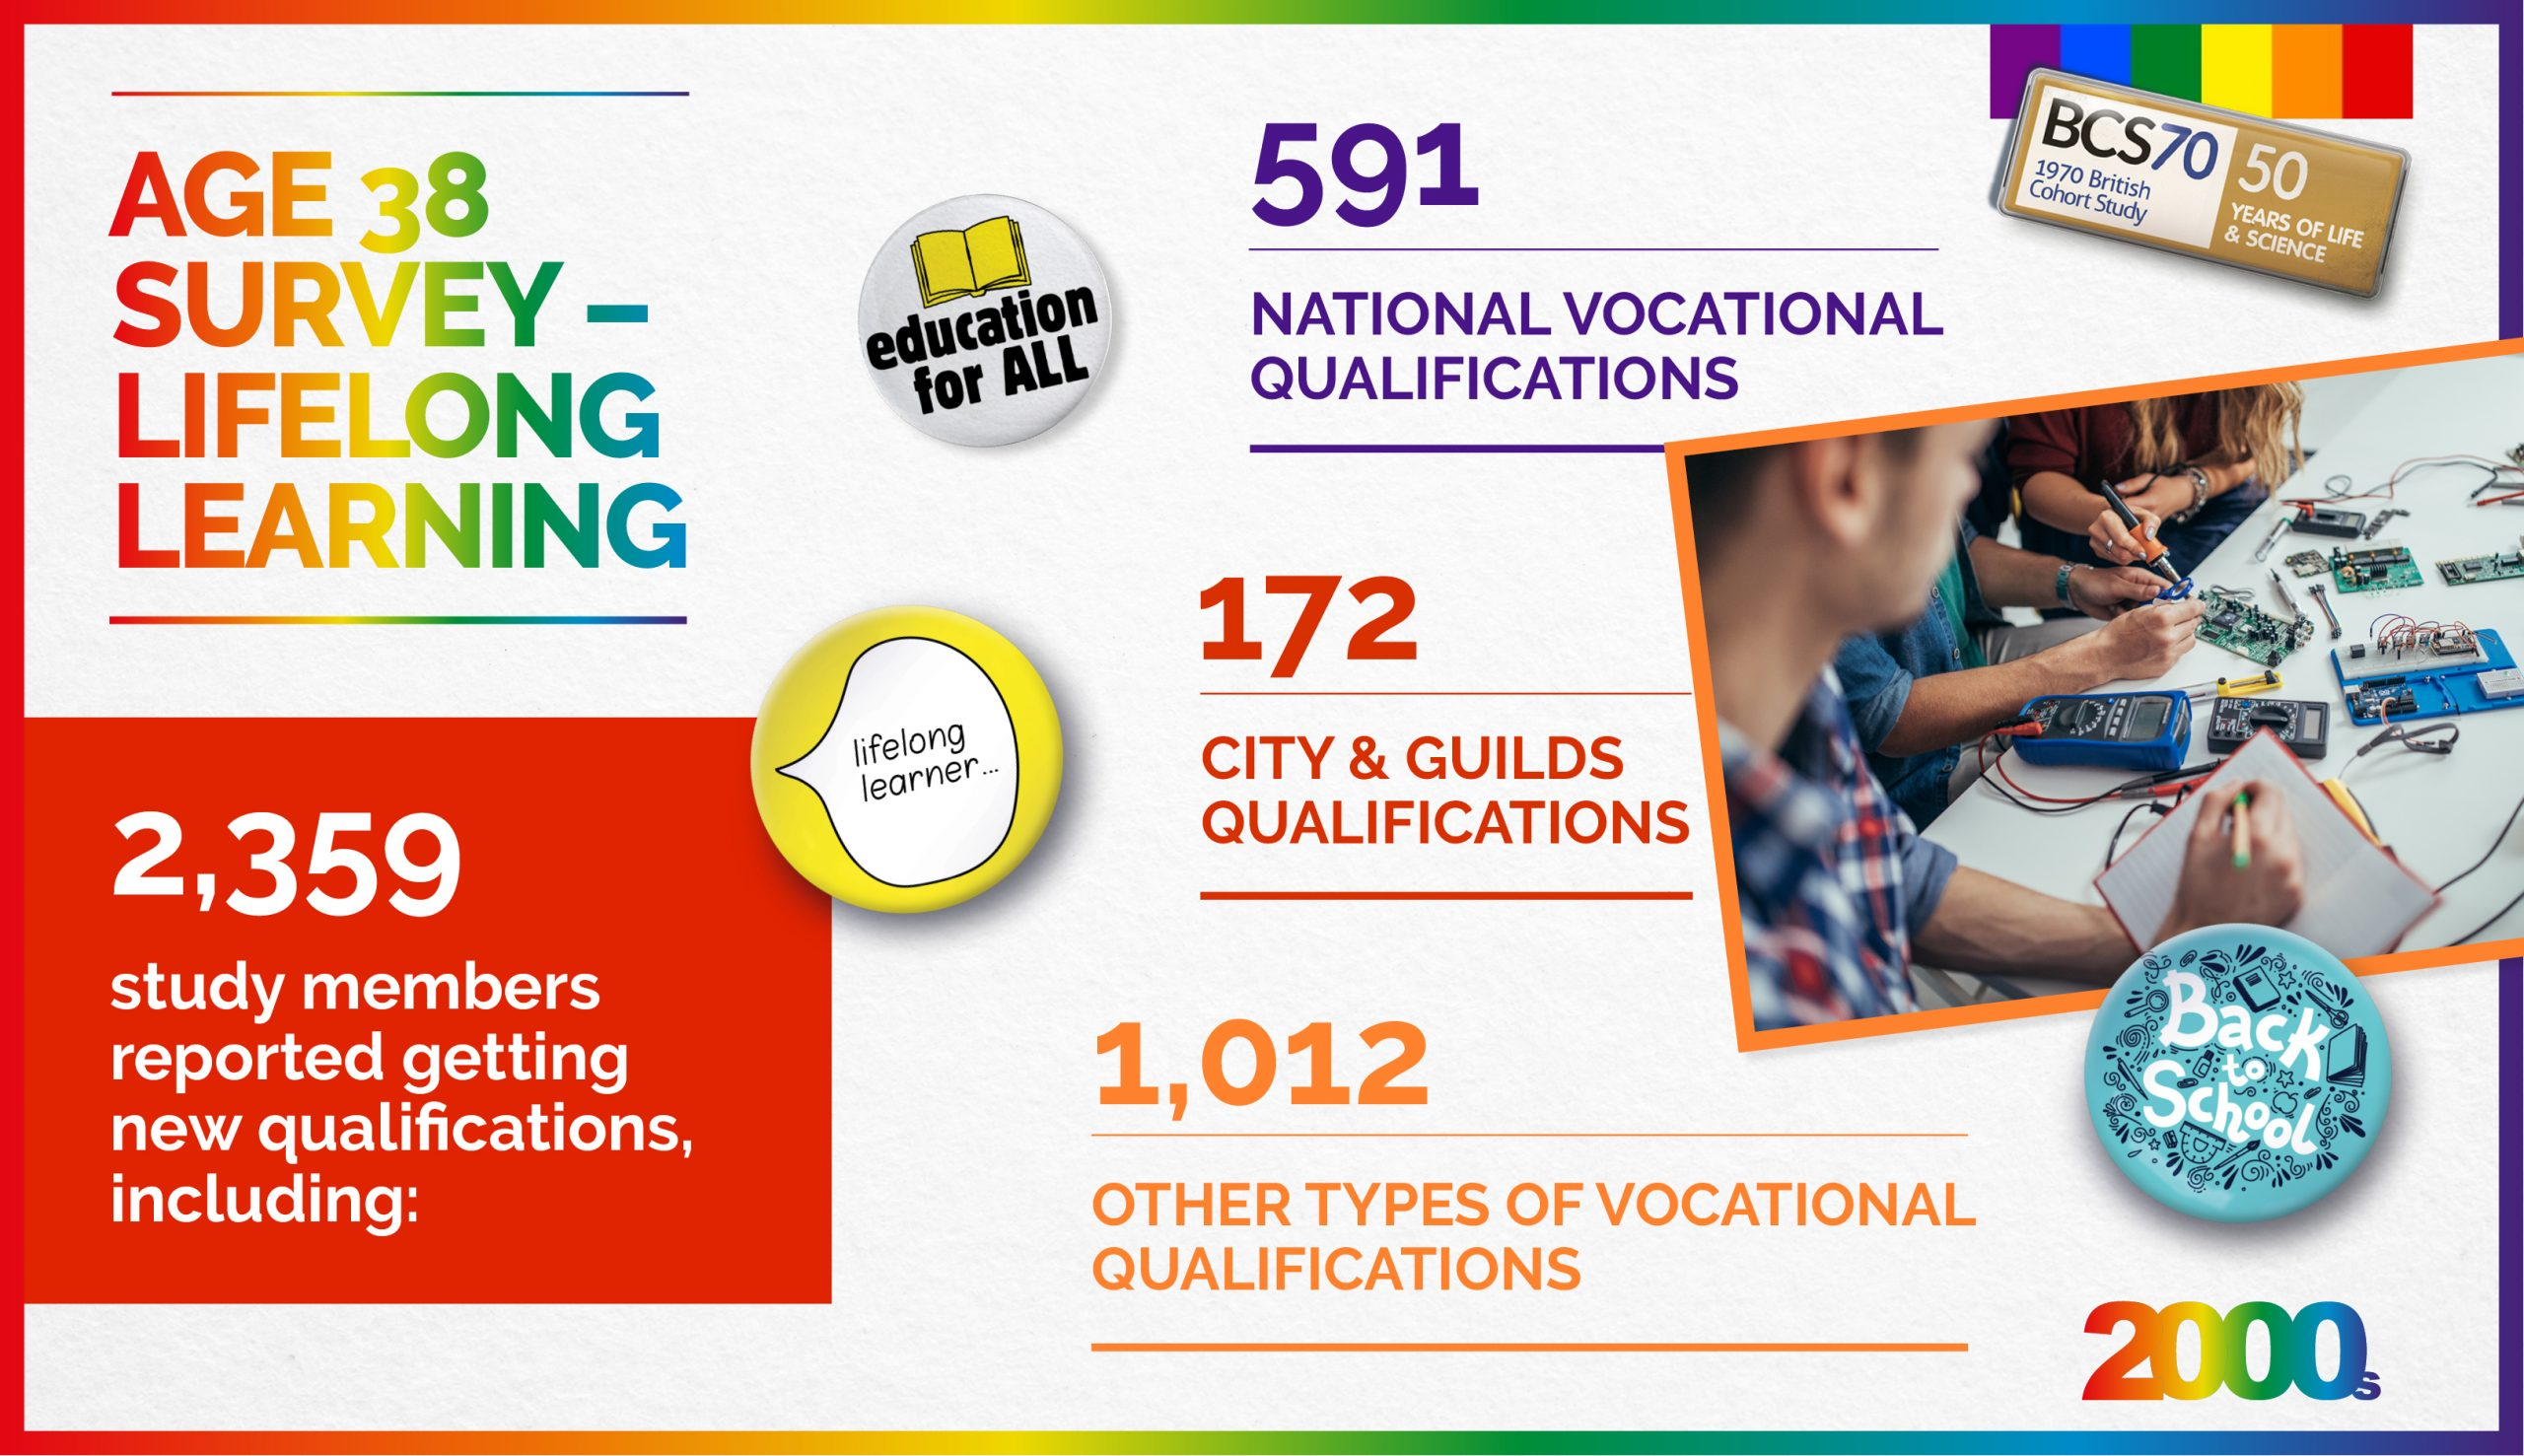 Collage about lifelong learning with badges, a picture and 3 stats